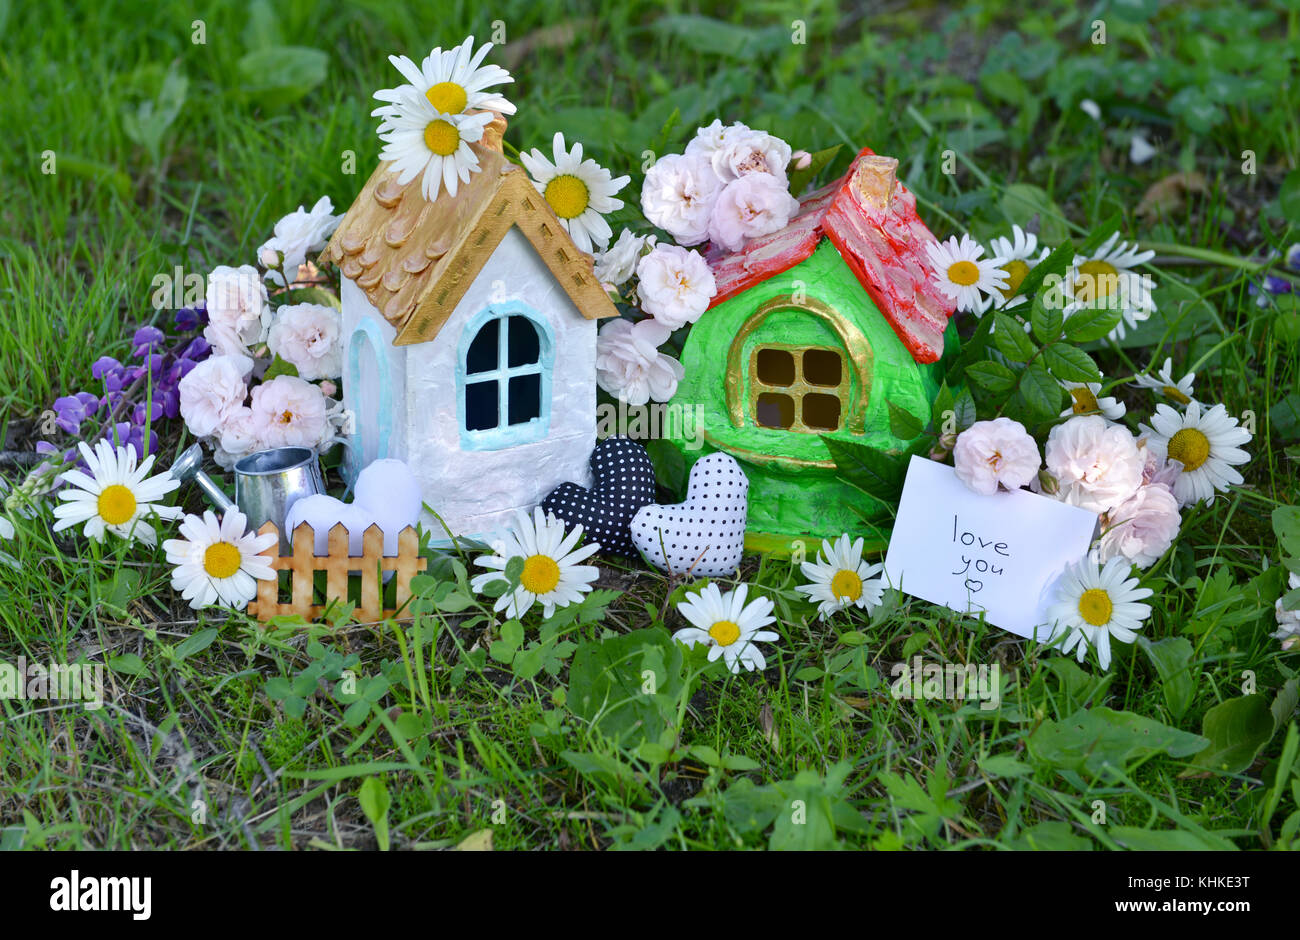 Two beautiful toy houses with note and text love you, cute decorations, roses and daisy flowers in the grass - Stock Image